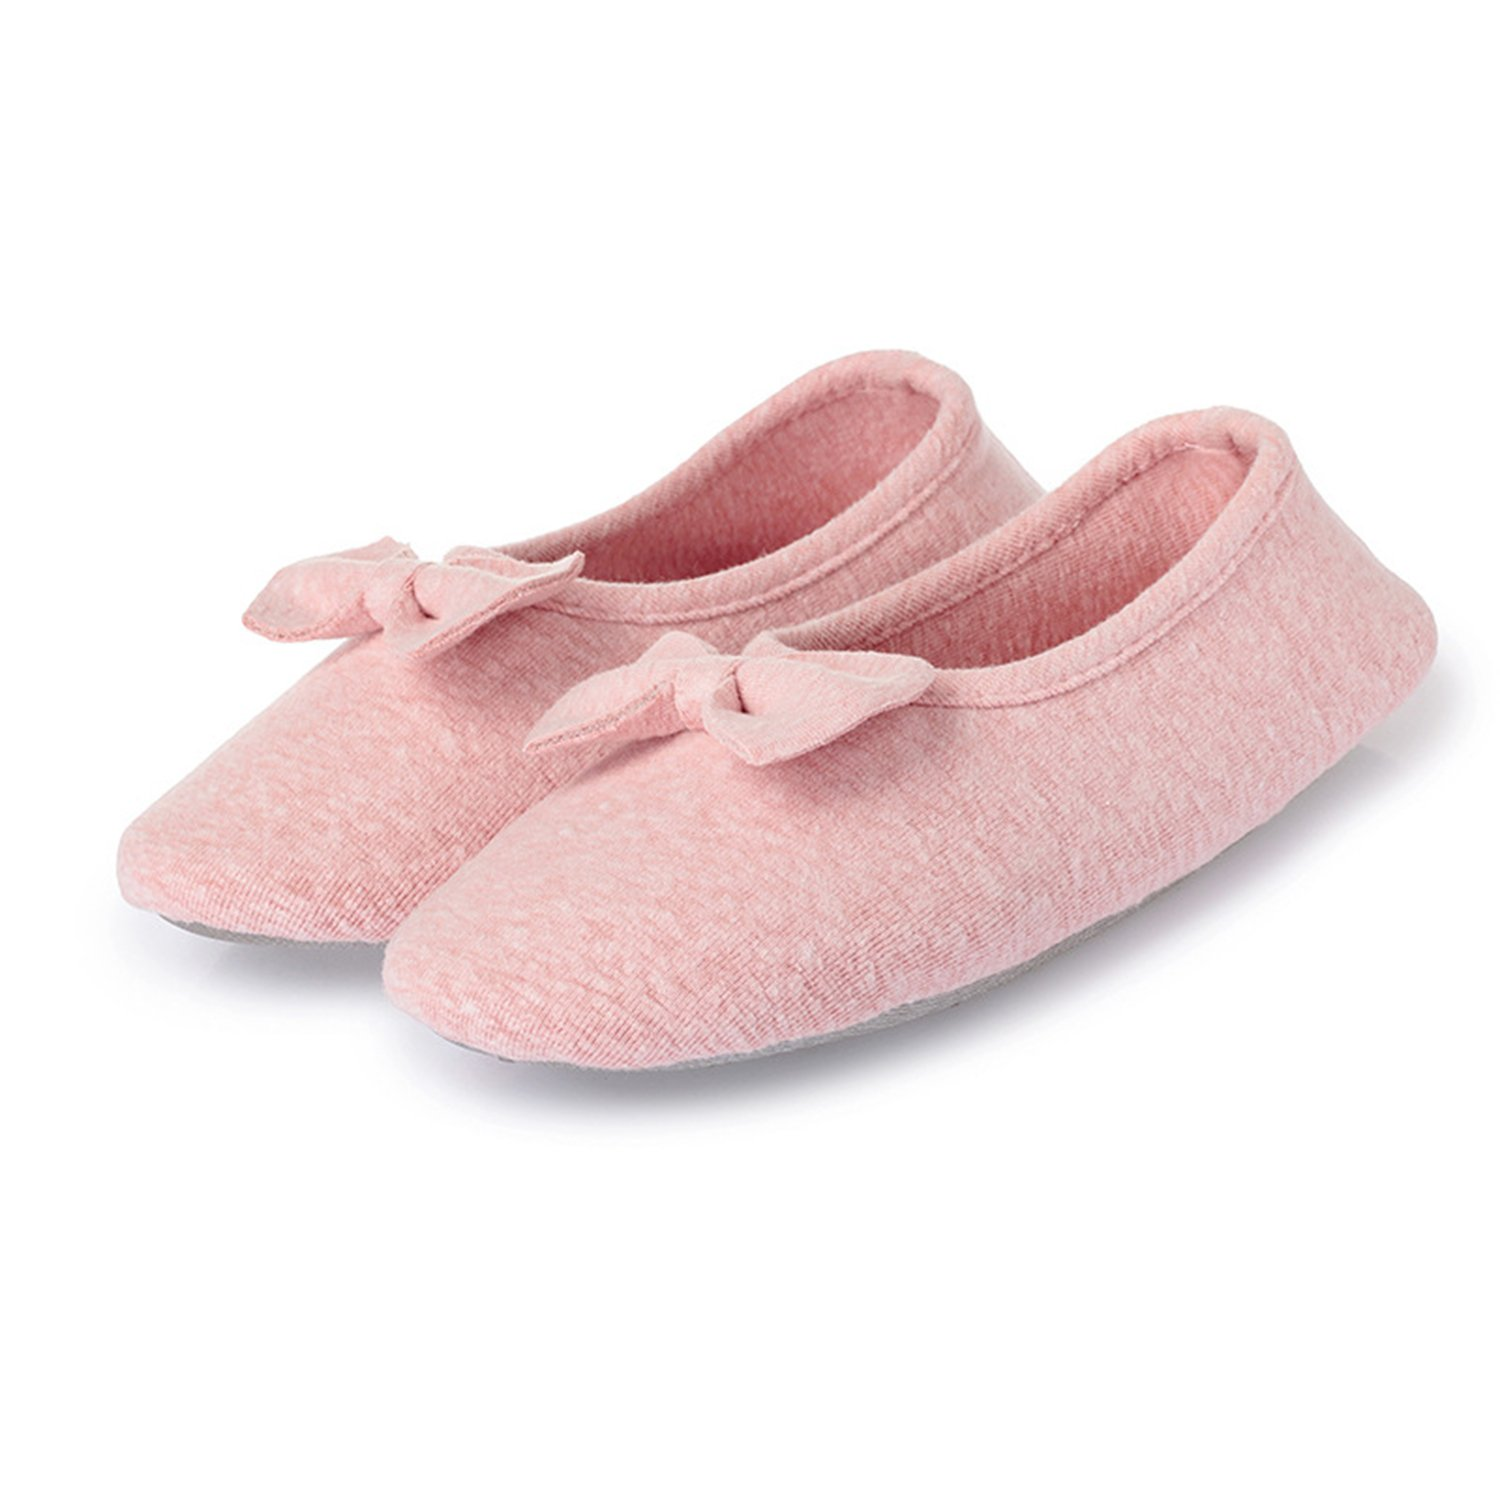 L-RUN Women's Ballerina Style Slippers Anti-Skid House Indoor Shoes Washable (L(W:8.5-9), Pink Bowknot) by L-RUN